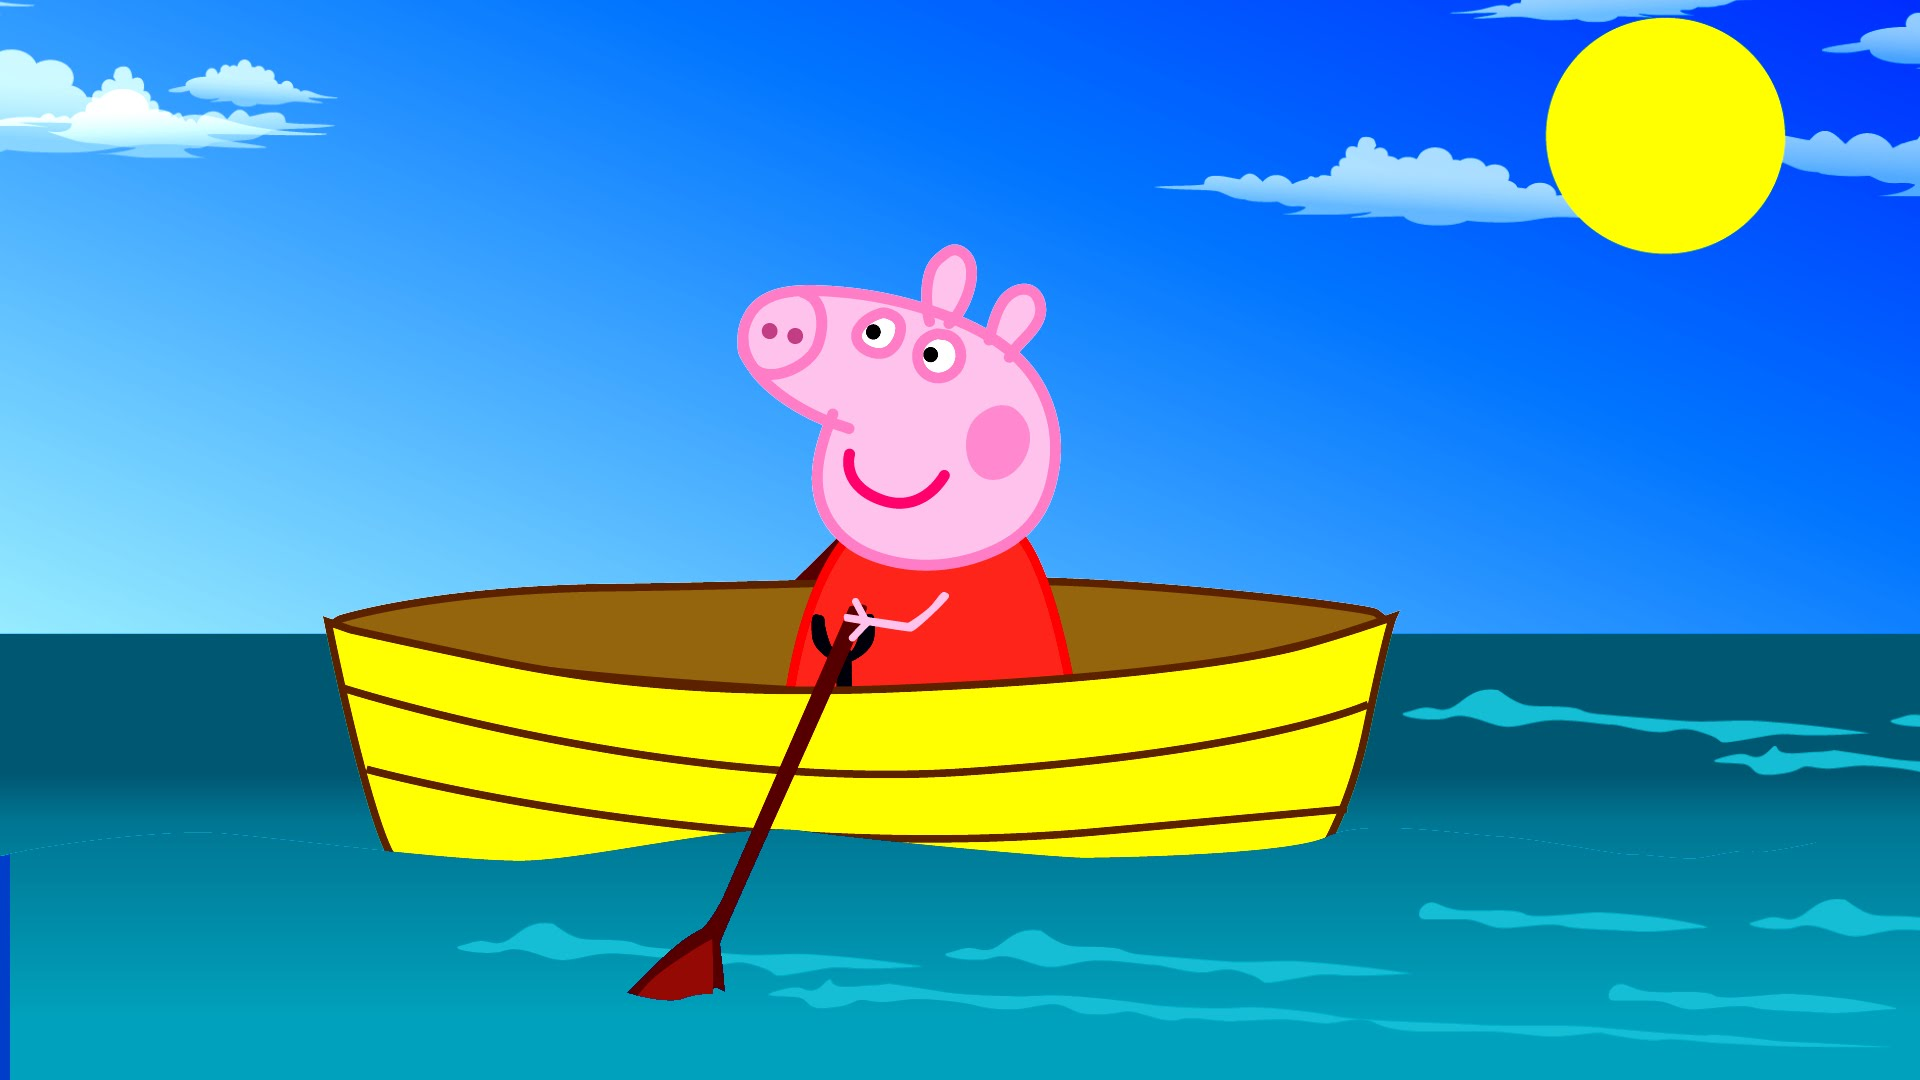 Sailing Boat clipart family boating Peppa Sailing Boat Finger Sailing